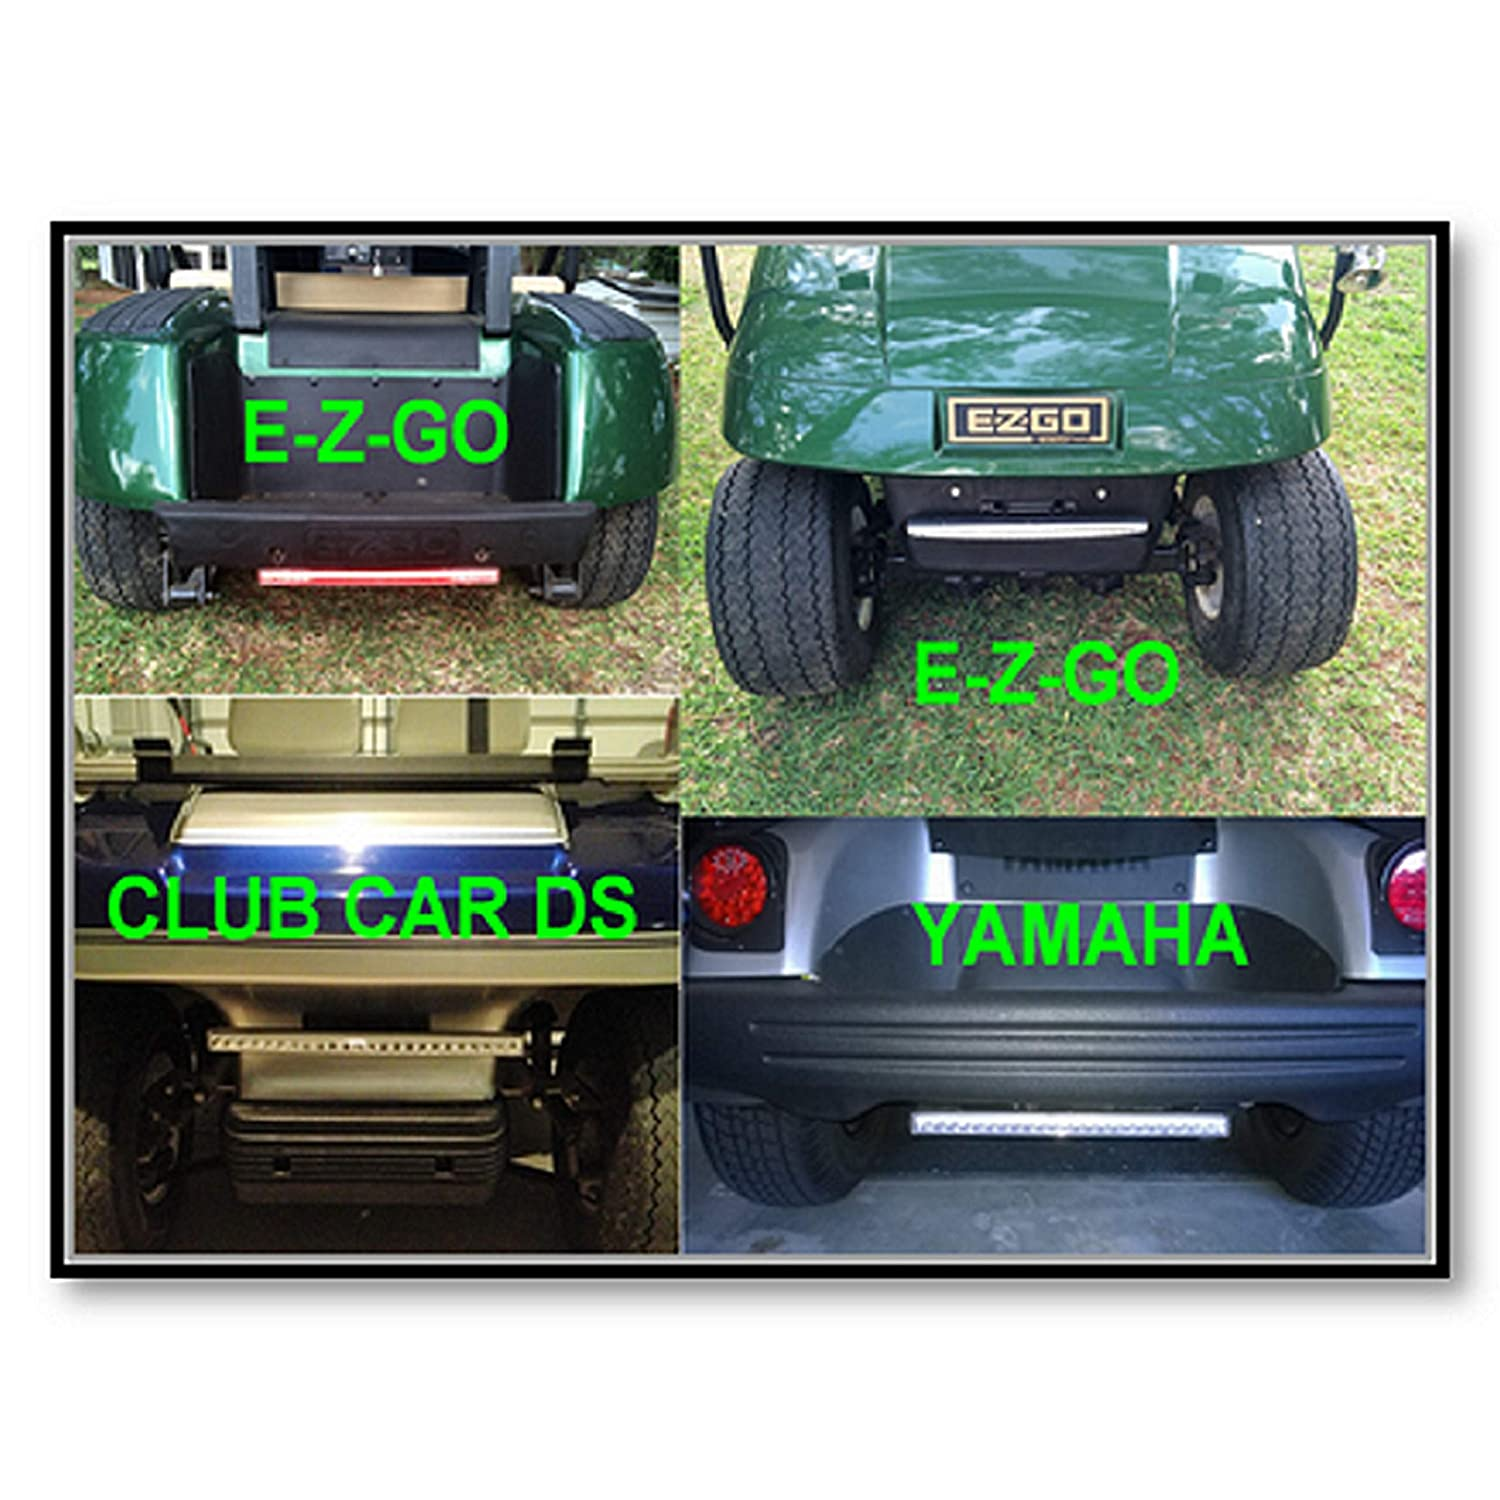 Golf Carts Kansas Drawings Of For Sale Guide Ezgo on